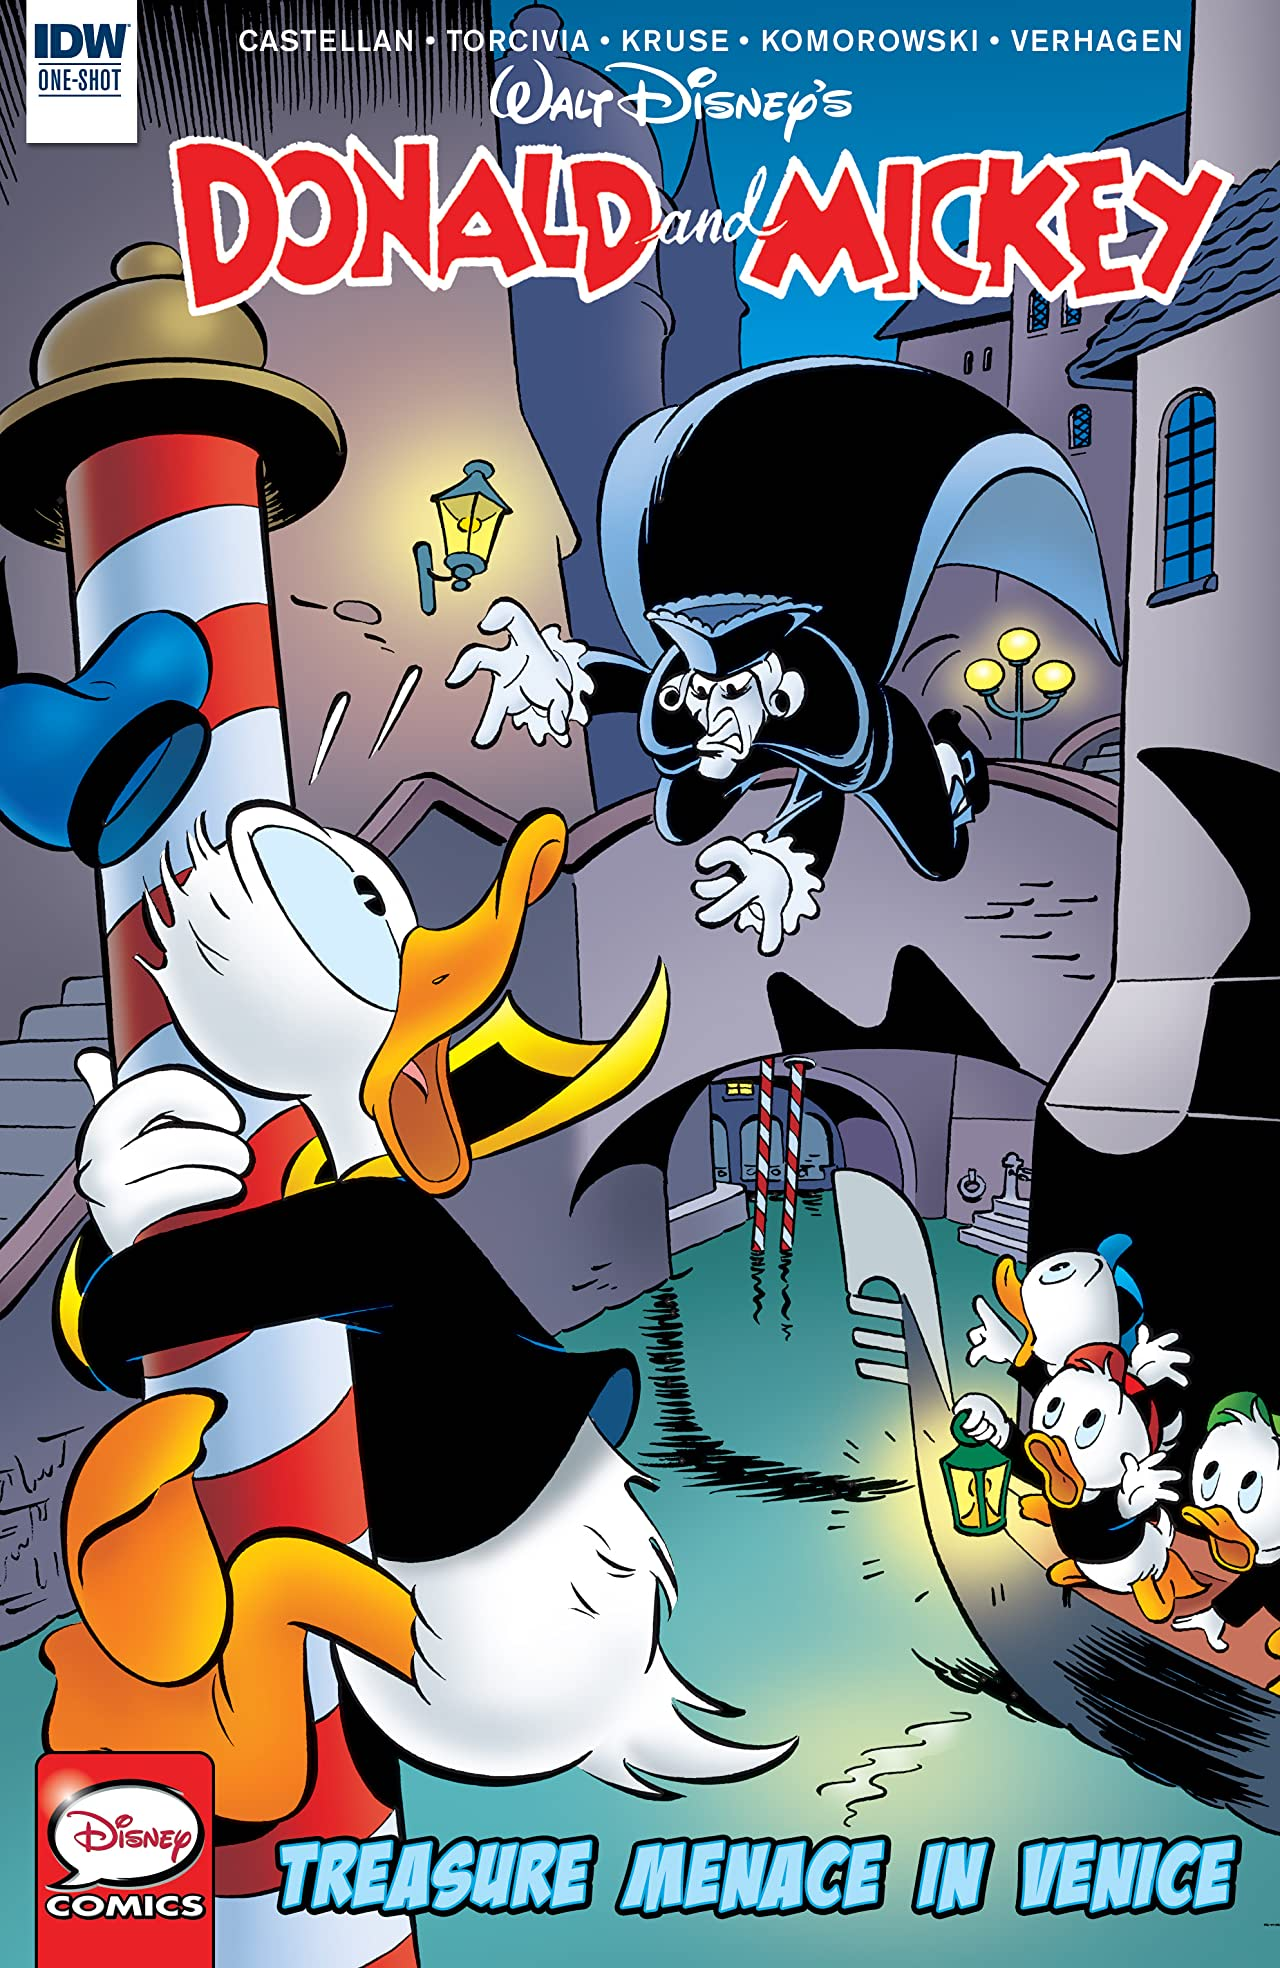 Donald and Mickey: Treasure Menace in Venice